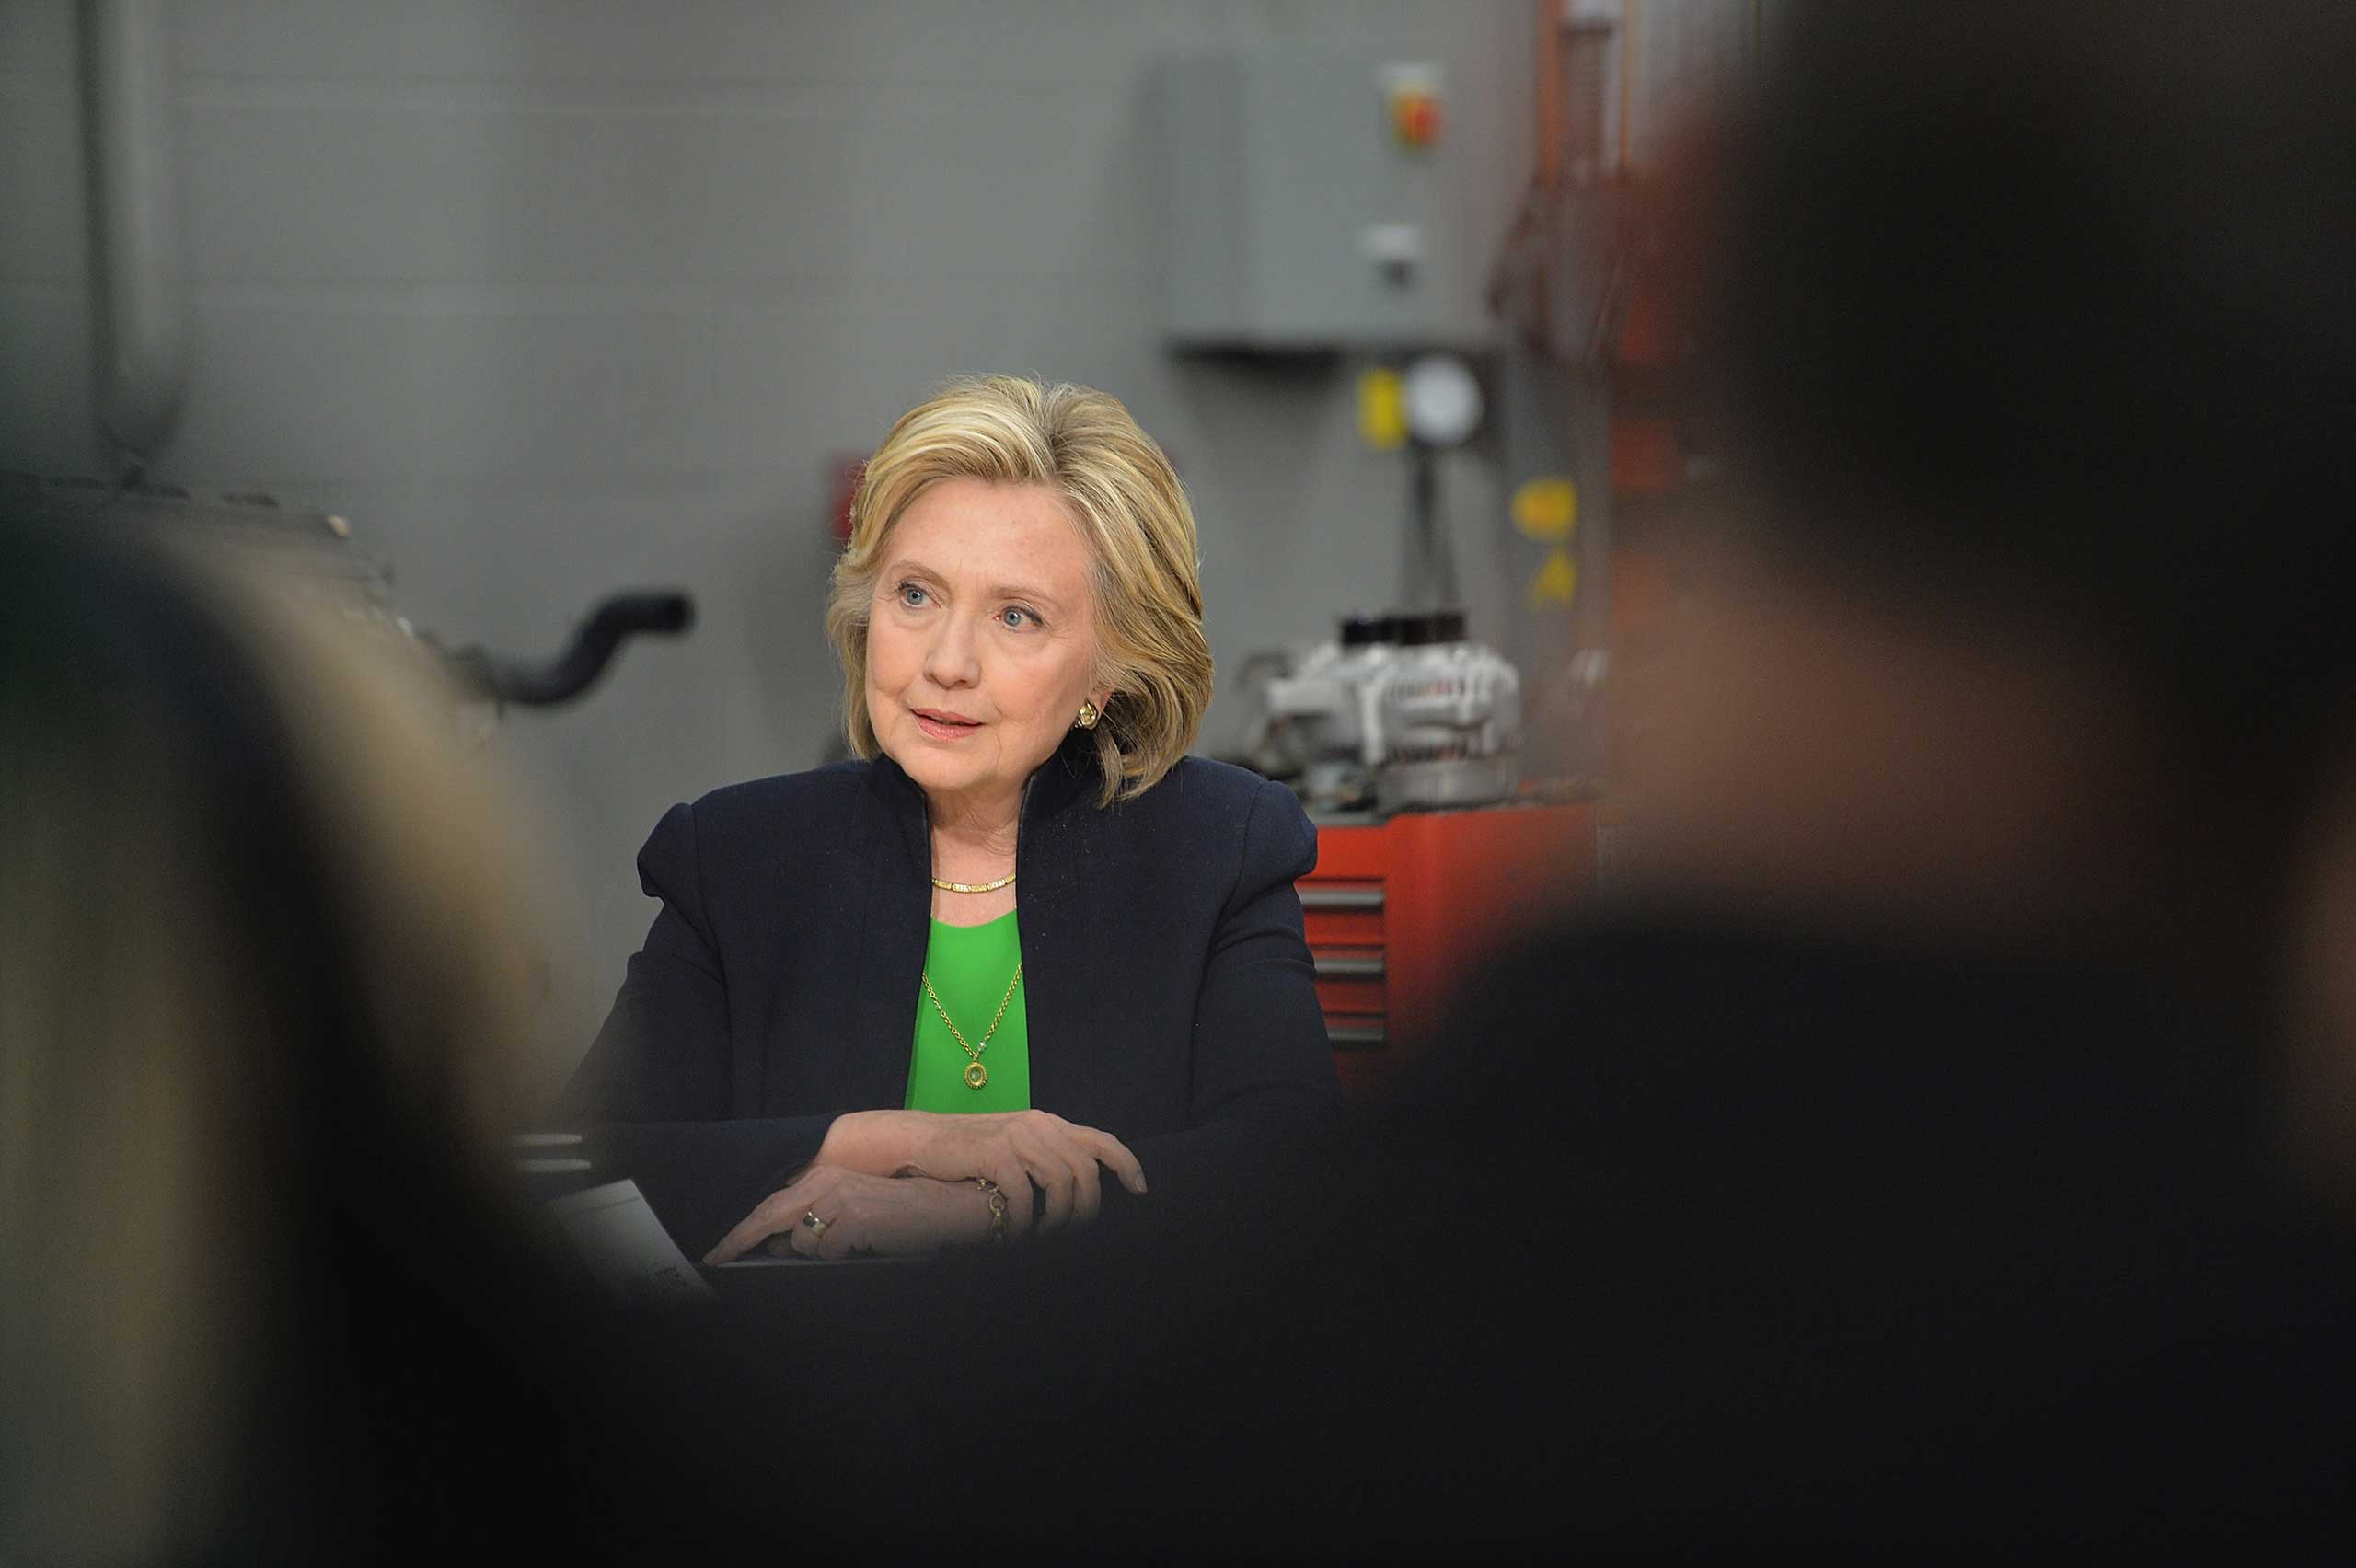 Hillary Rodham Clinton at a campaign event at the Kirkwood Community College in Monticello, Iowa, on Apr. 14, 2015.